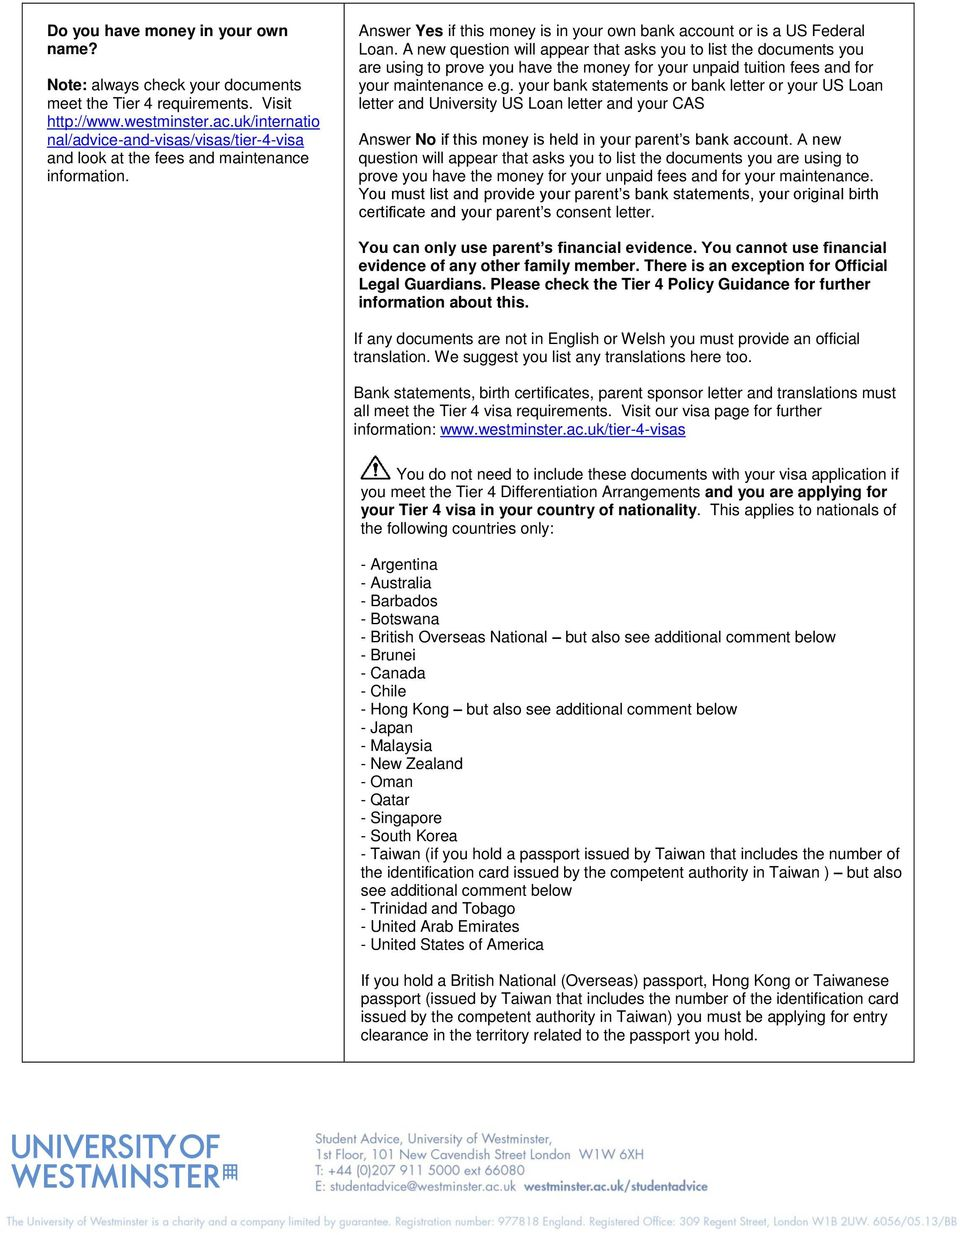 Applying for a Tier 4 Visa outside of the UK - PDF